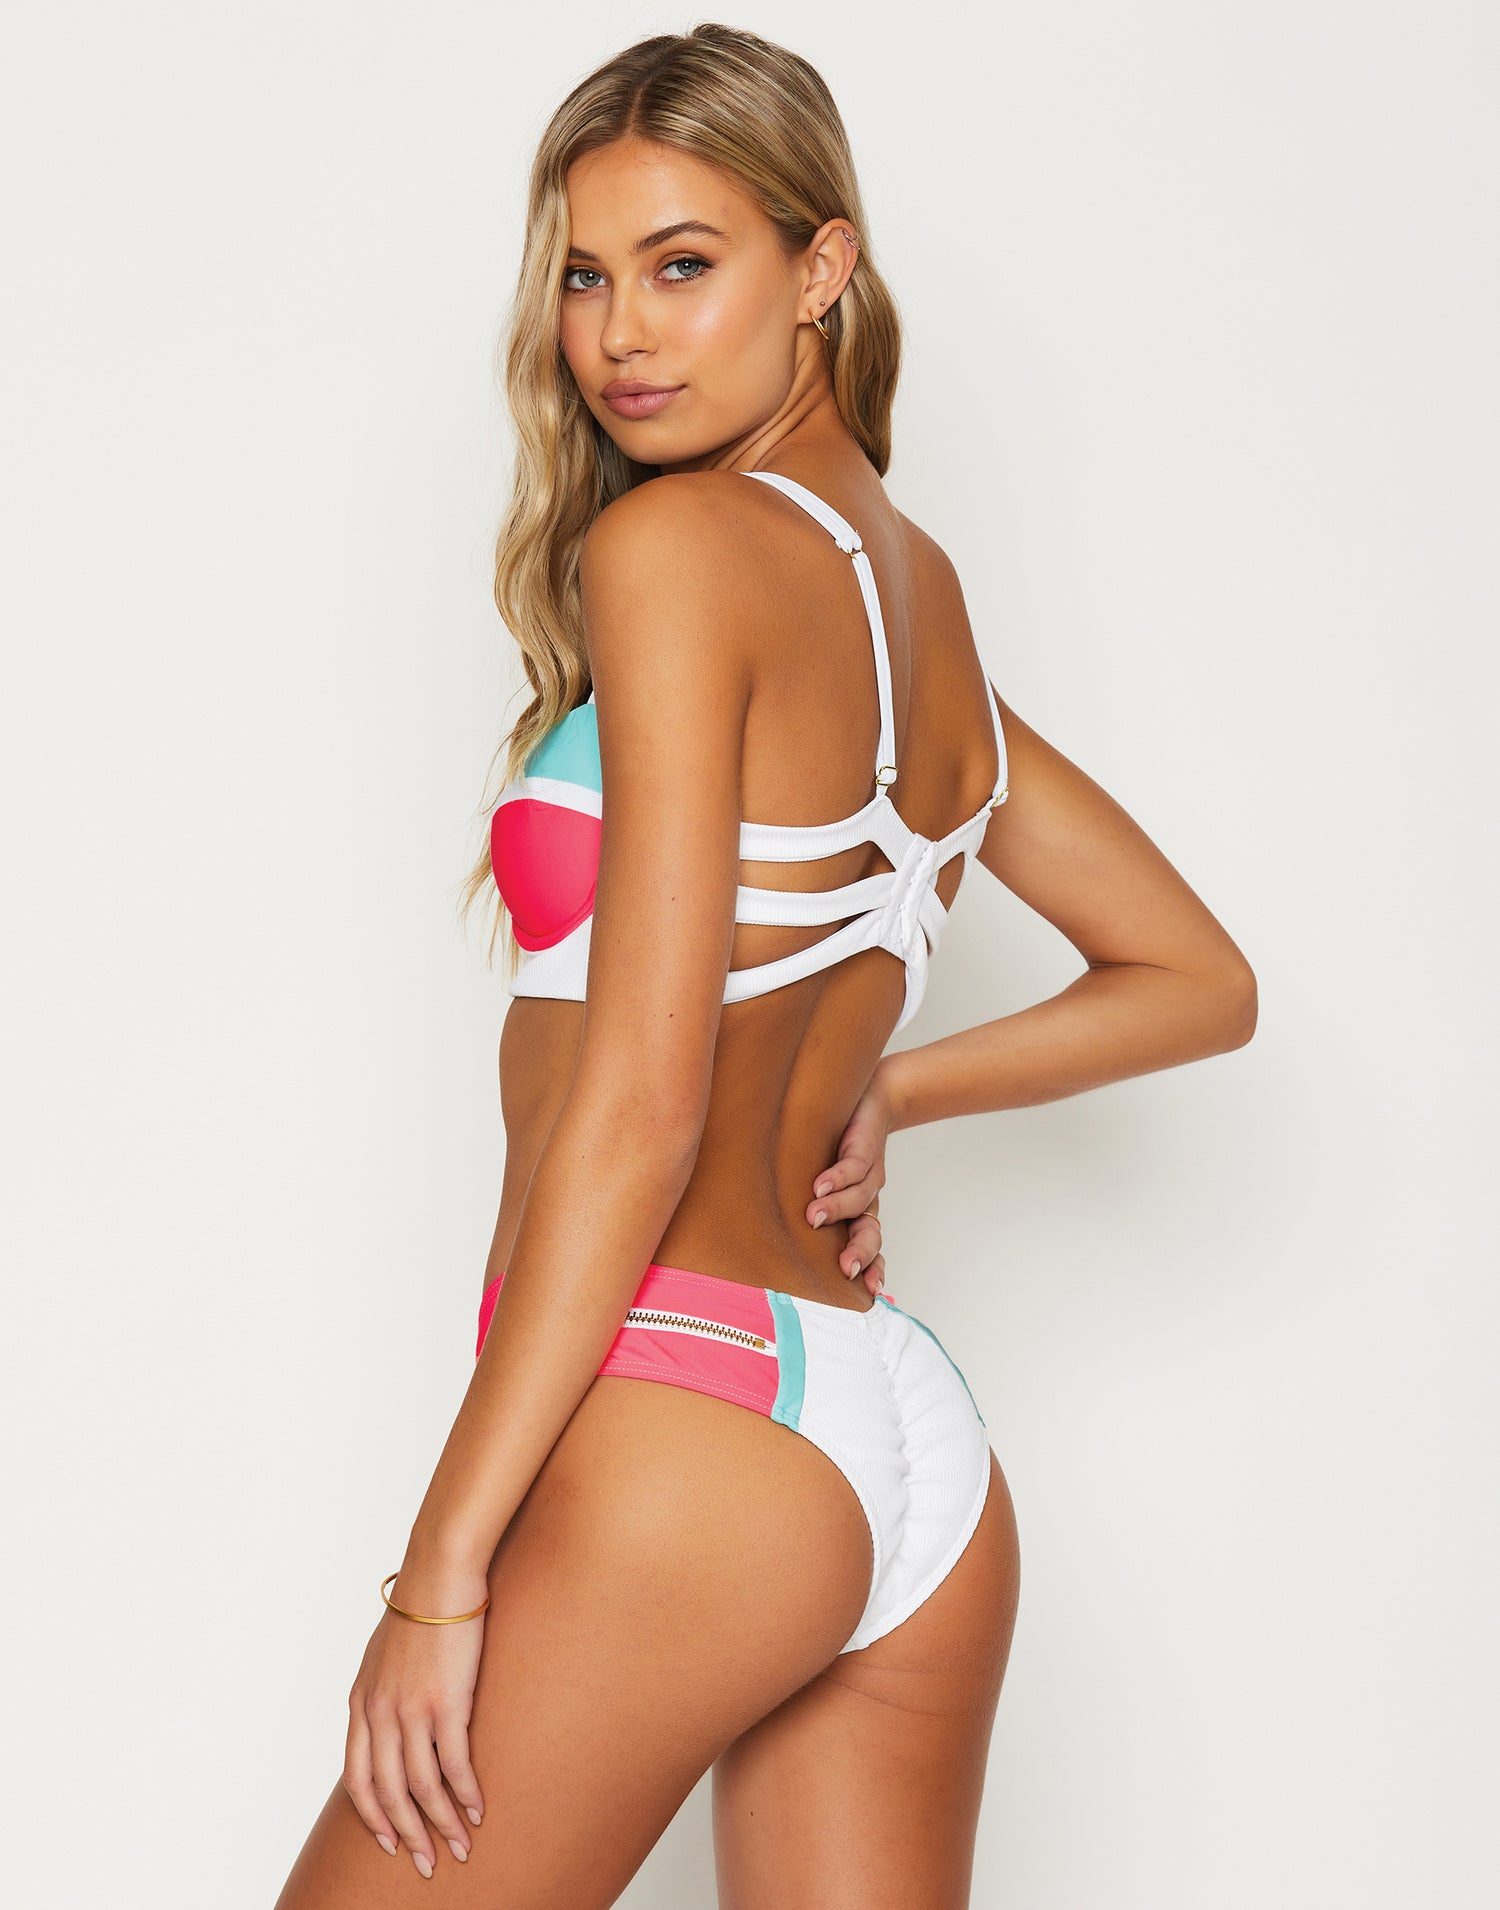 Endless Summer Push Up Bikini Top in White/Aqua/Popstar with Workable Zippers - Back View